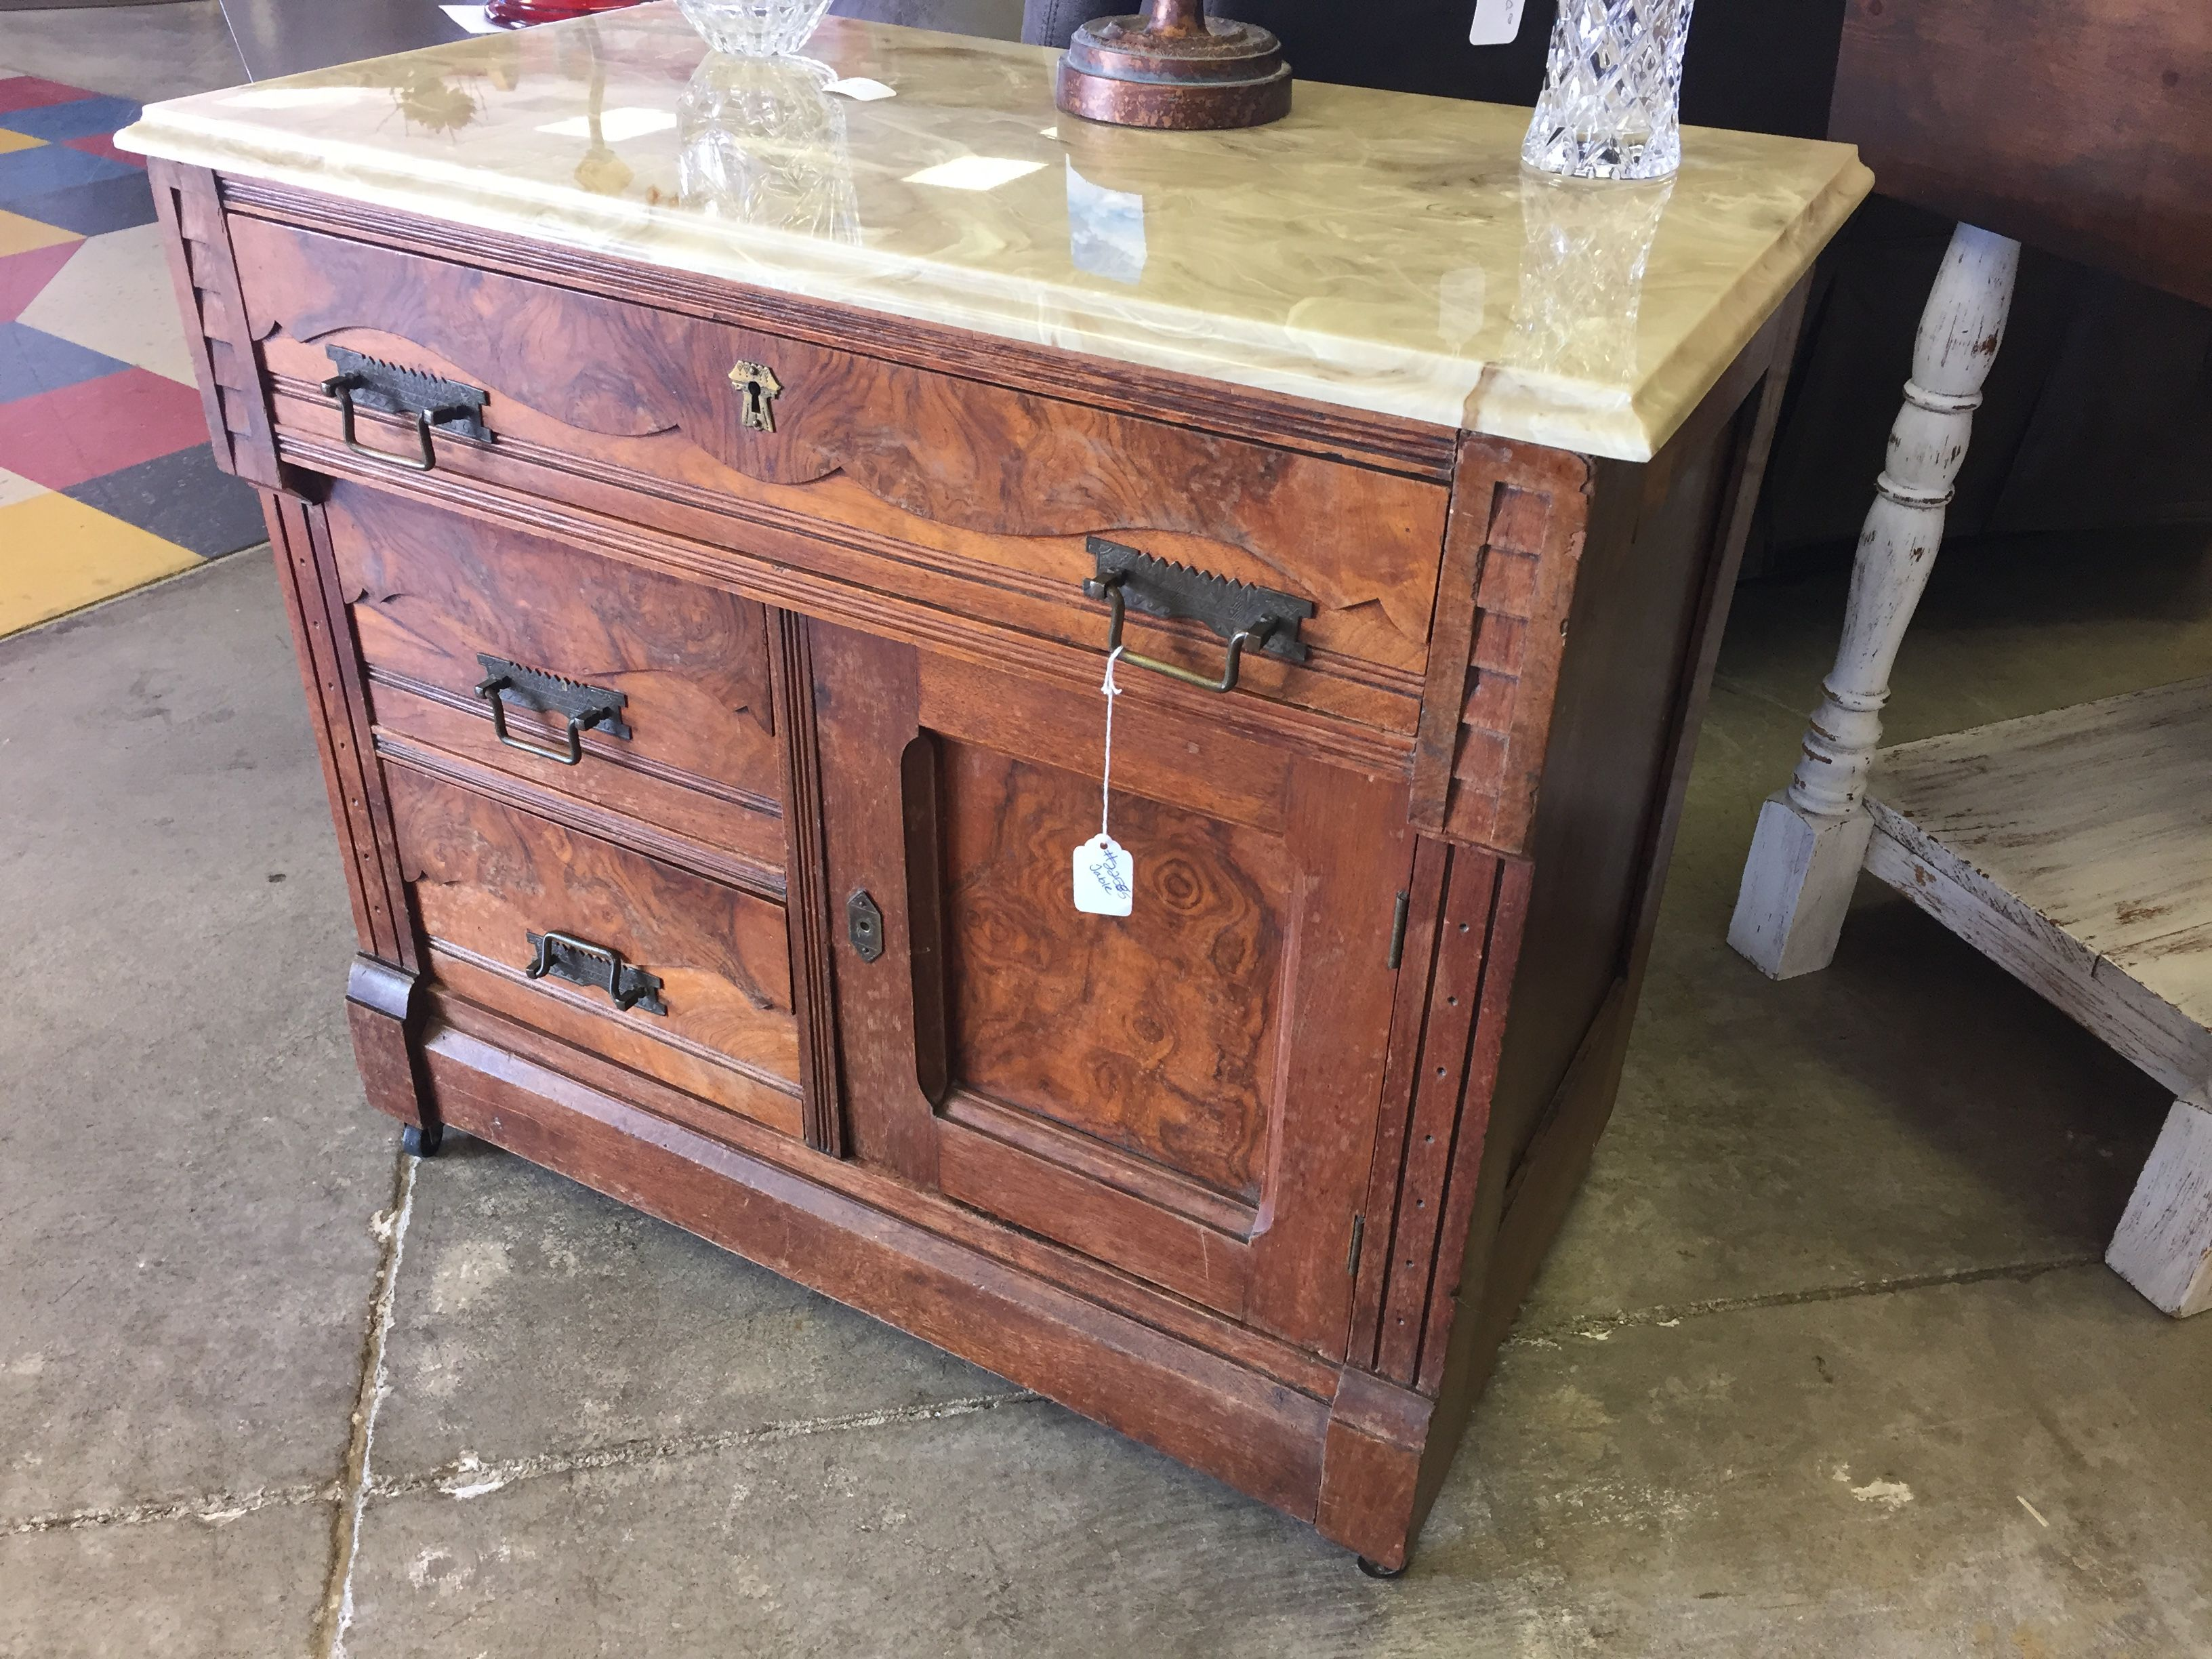 Unique Design Side/entry Table  $125 #furniture #mk #consignment #forsale